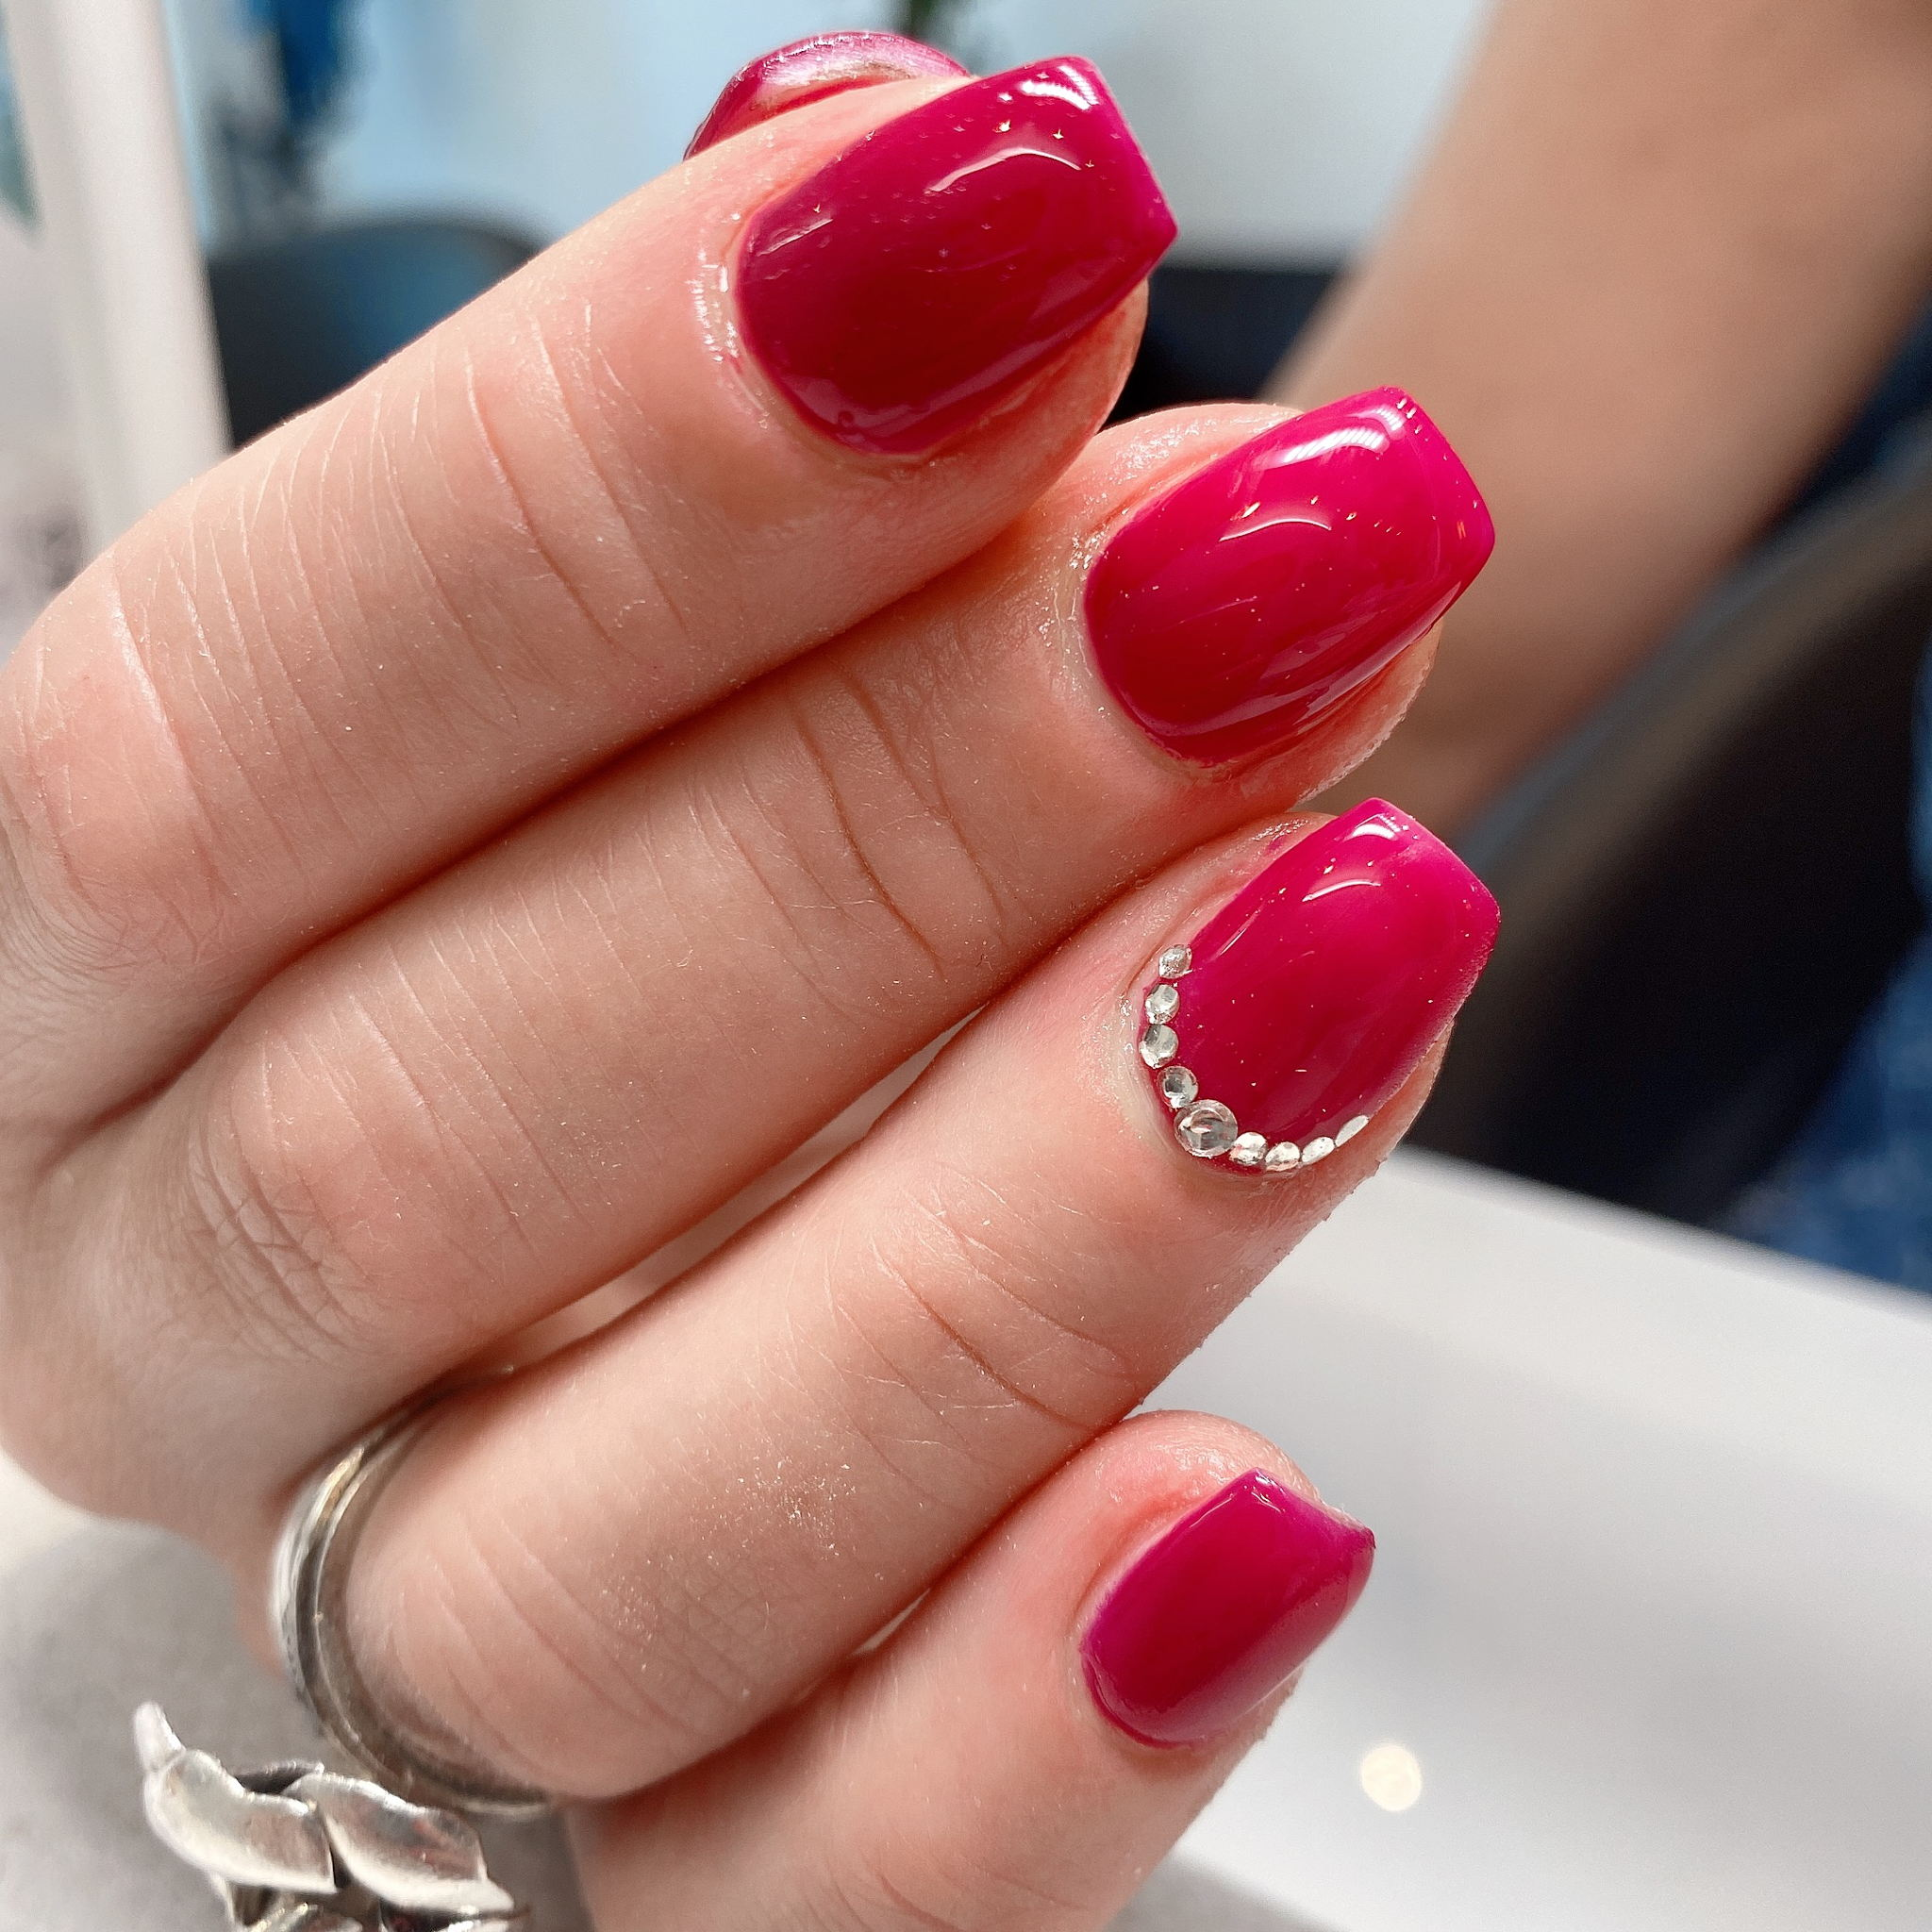 Pin by Биляна Джамбазова on My Nails in 2020   My nails